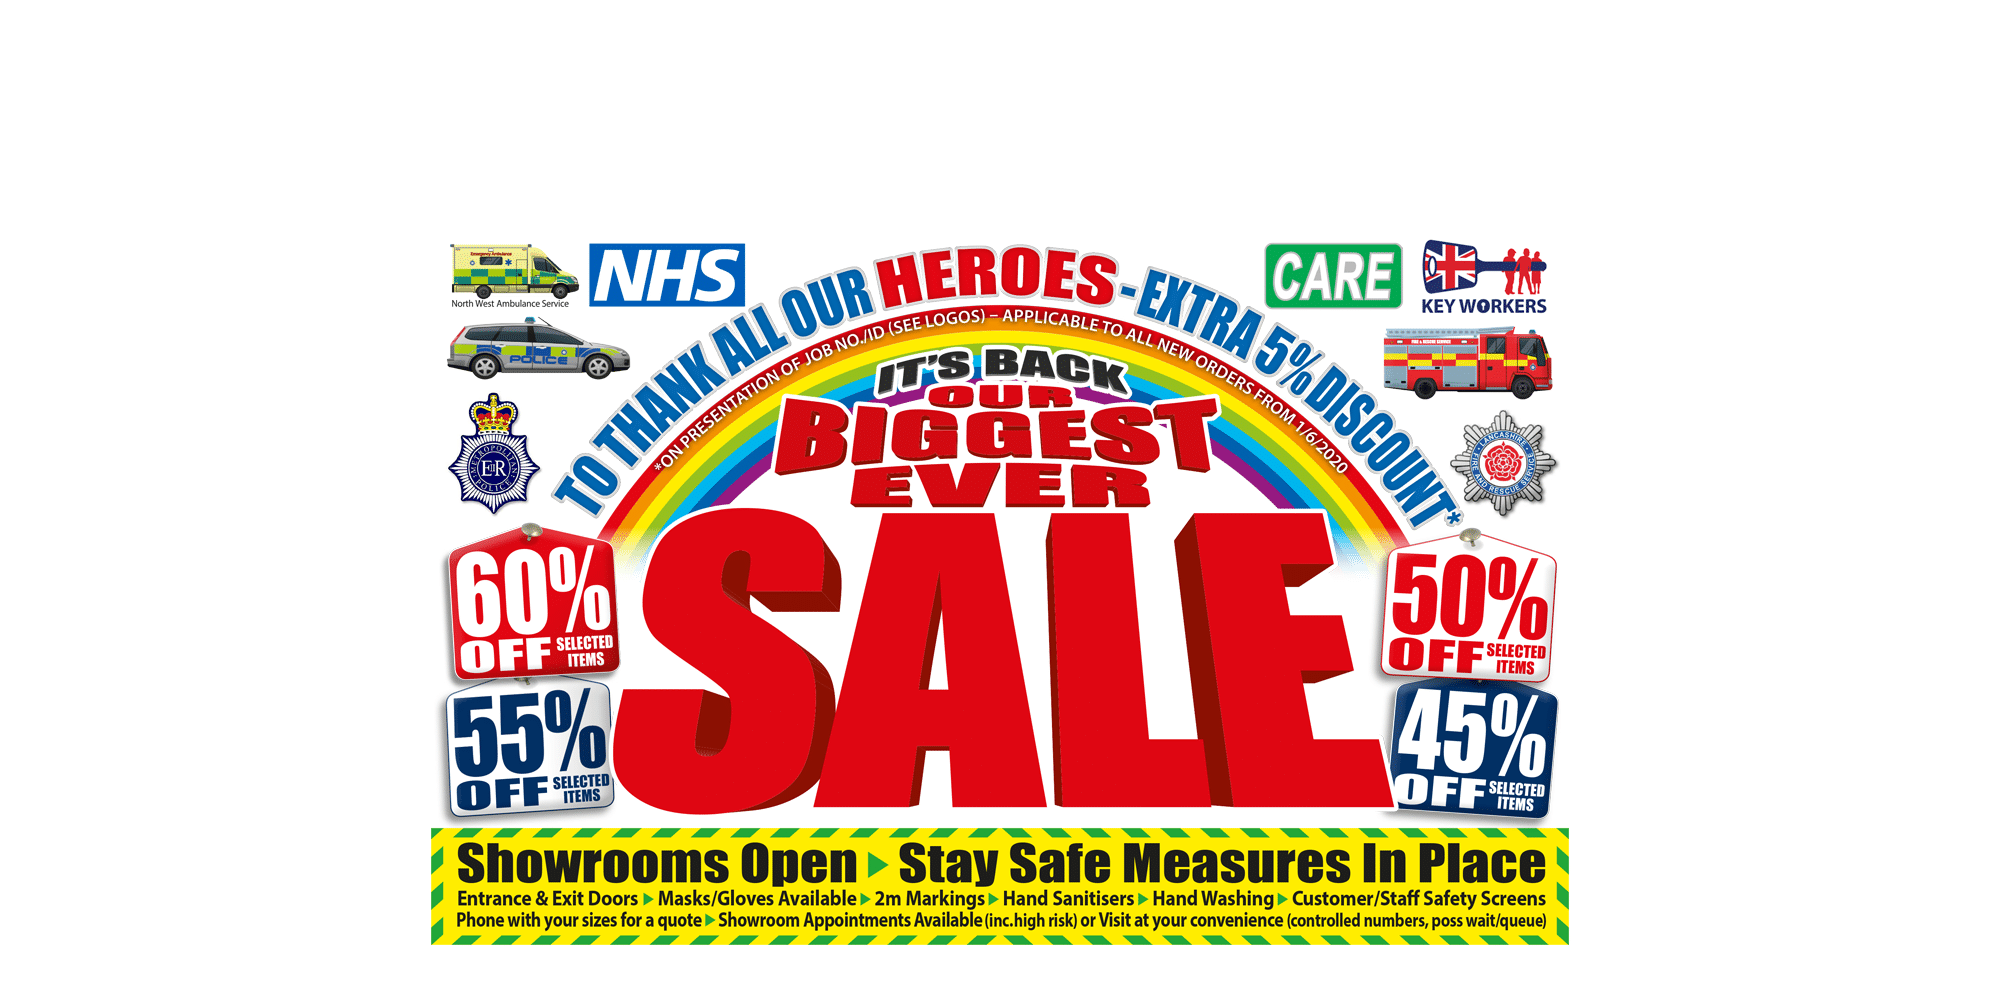 Biggest Ever Sale